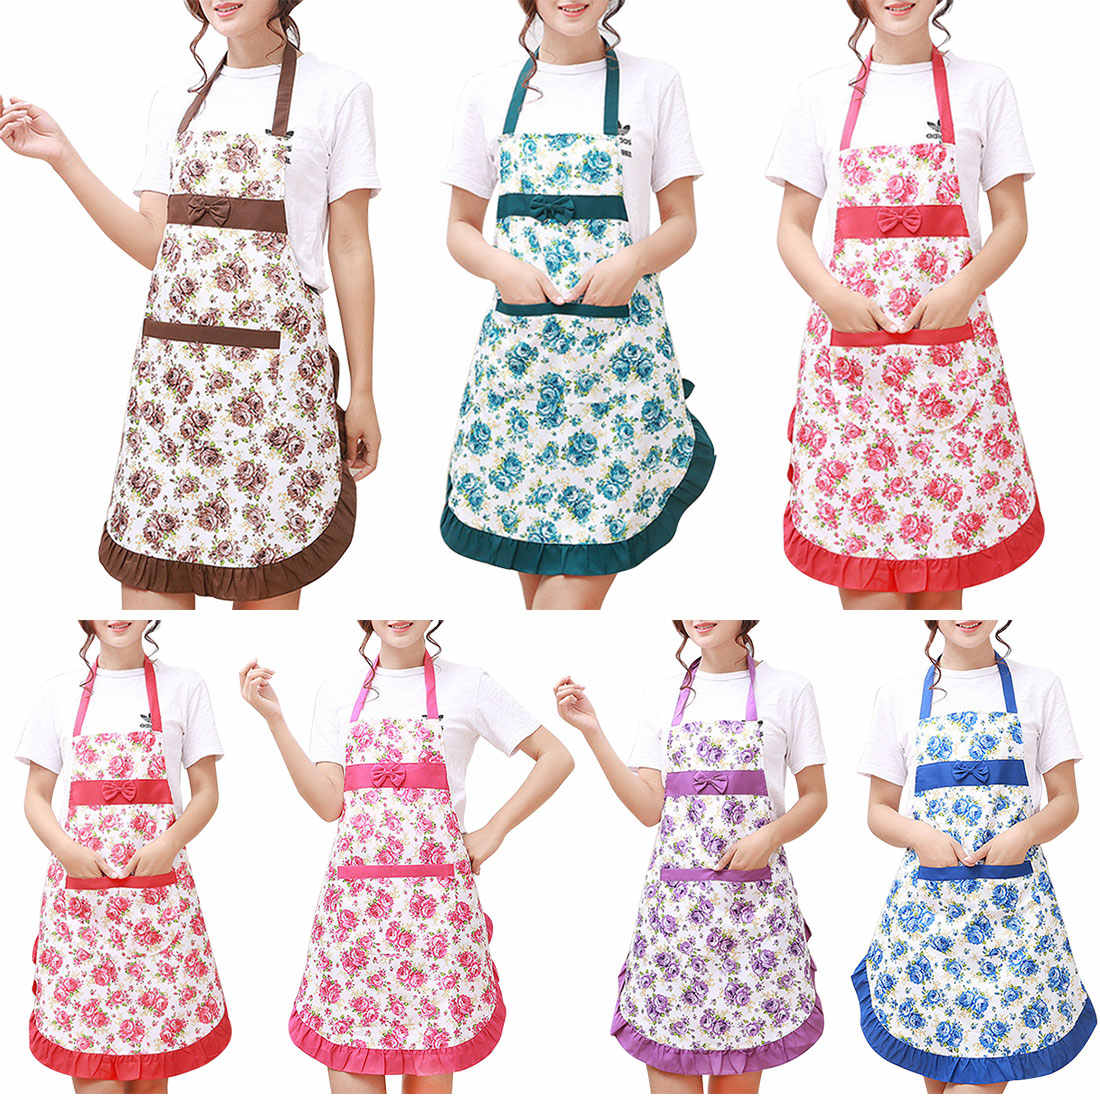 21866080ef3dd Chinese Floral Cotton Linen Apron Woman Bibs Home Cooking Baking Coffee  Shop Cleaning Aprons With Pocket Kitchen Accessories